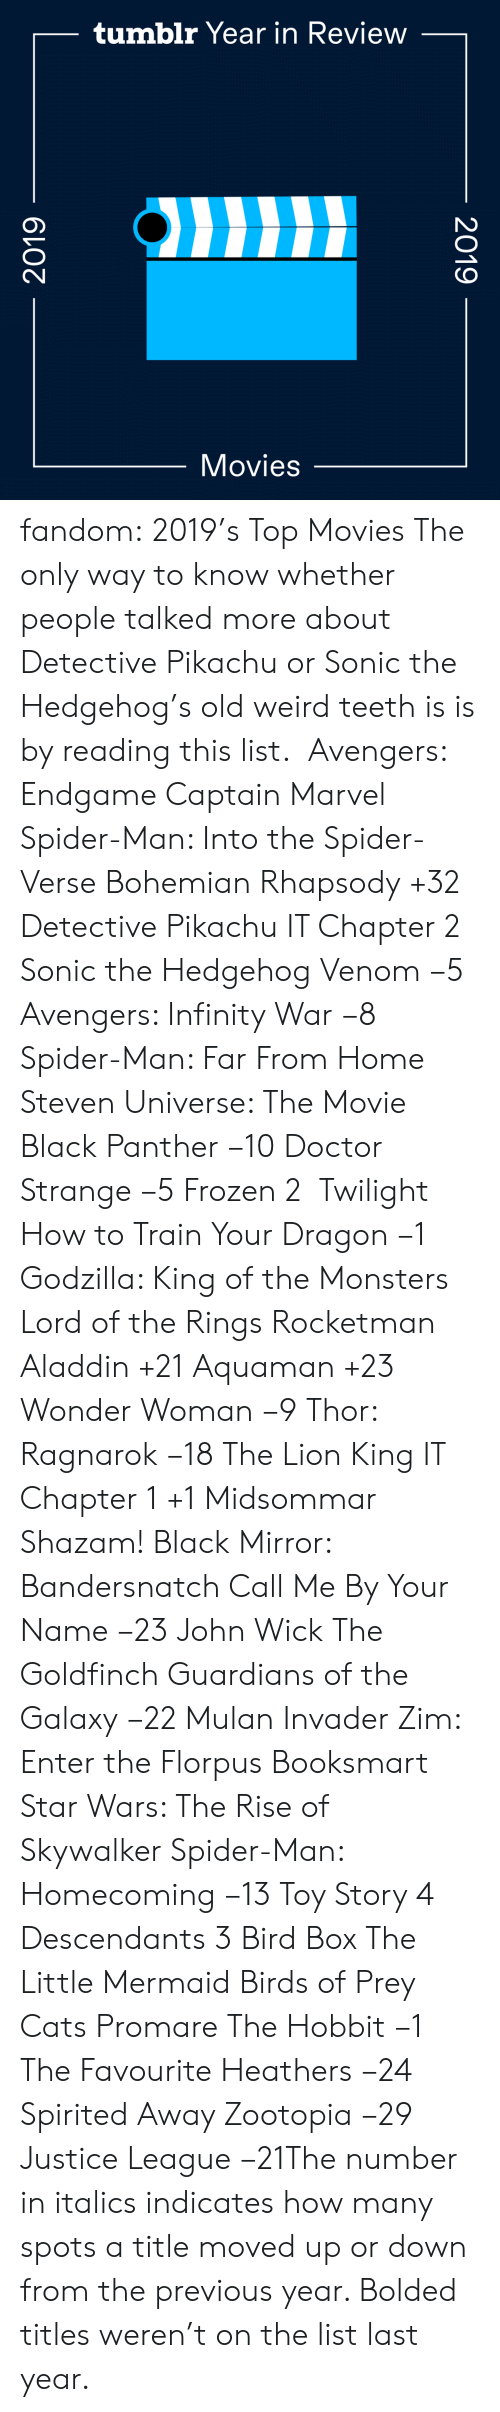 Train: tumblr Year in Review  Movies  2019  2019 fandom:  2019's Top Movies  The only way to know whether people talked more about Detective Pikachu or Sonic the Hedgehog's old weird teeth is is by reading this list.   Avengers: Endgame  Captain Marvel  Spider-Man: Into the Spider-Verse  Bohemian Rhapsody +32  Detective Pikachu  IT Chapter 2  Sonic the Hedgehog  Venom −5  Avengers: Infinity War −8  Spider-Man: Far From Home  Steven Universe: The Movie  Black Panther −10  Doctor Strange −5  Frozen 2   Twilight  How to Train Your Dragon −1  Godzilla: King of the Monsters  Lord of the Rings  Rocketman  Aladdin +21  Aquaman +23  Wonder Woman −9  Thor: Ragnarok −18  The Lion King  IT Chapter 1 +1  Midsommar  Shazam!  Black Mirror: Bandersnatch  Call Me By Your Name −23  John Wick  The Goldfinch  Guardians of the Galaxy −22  Mulan  Invader Zim: Enter the Florpus  Booksmart  Star Wars: The Rise of Skywalker  Spider-Man: Homecoming −13  Toy Story 4  Descendants 3  Bird Box  The Little Mermaid  Birds of Prey  Cats  Promare  The Hobbit −1  The Favourite  Heathers −24  Spirited Away  Zootopia −29 Justice League −21The number in italics indicates how many spots a title moved up or down from the previous year. Bolded titles weren't on the list last year.